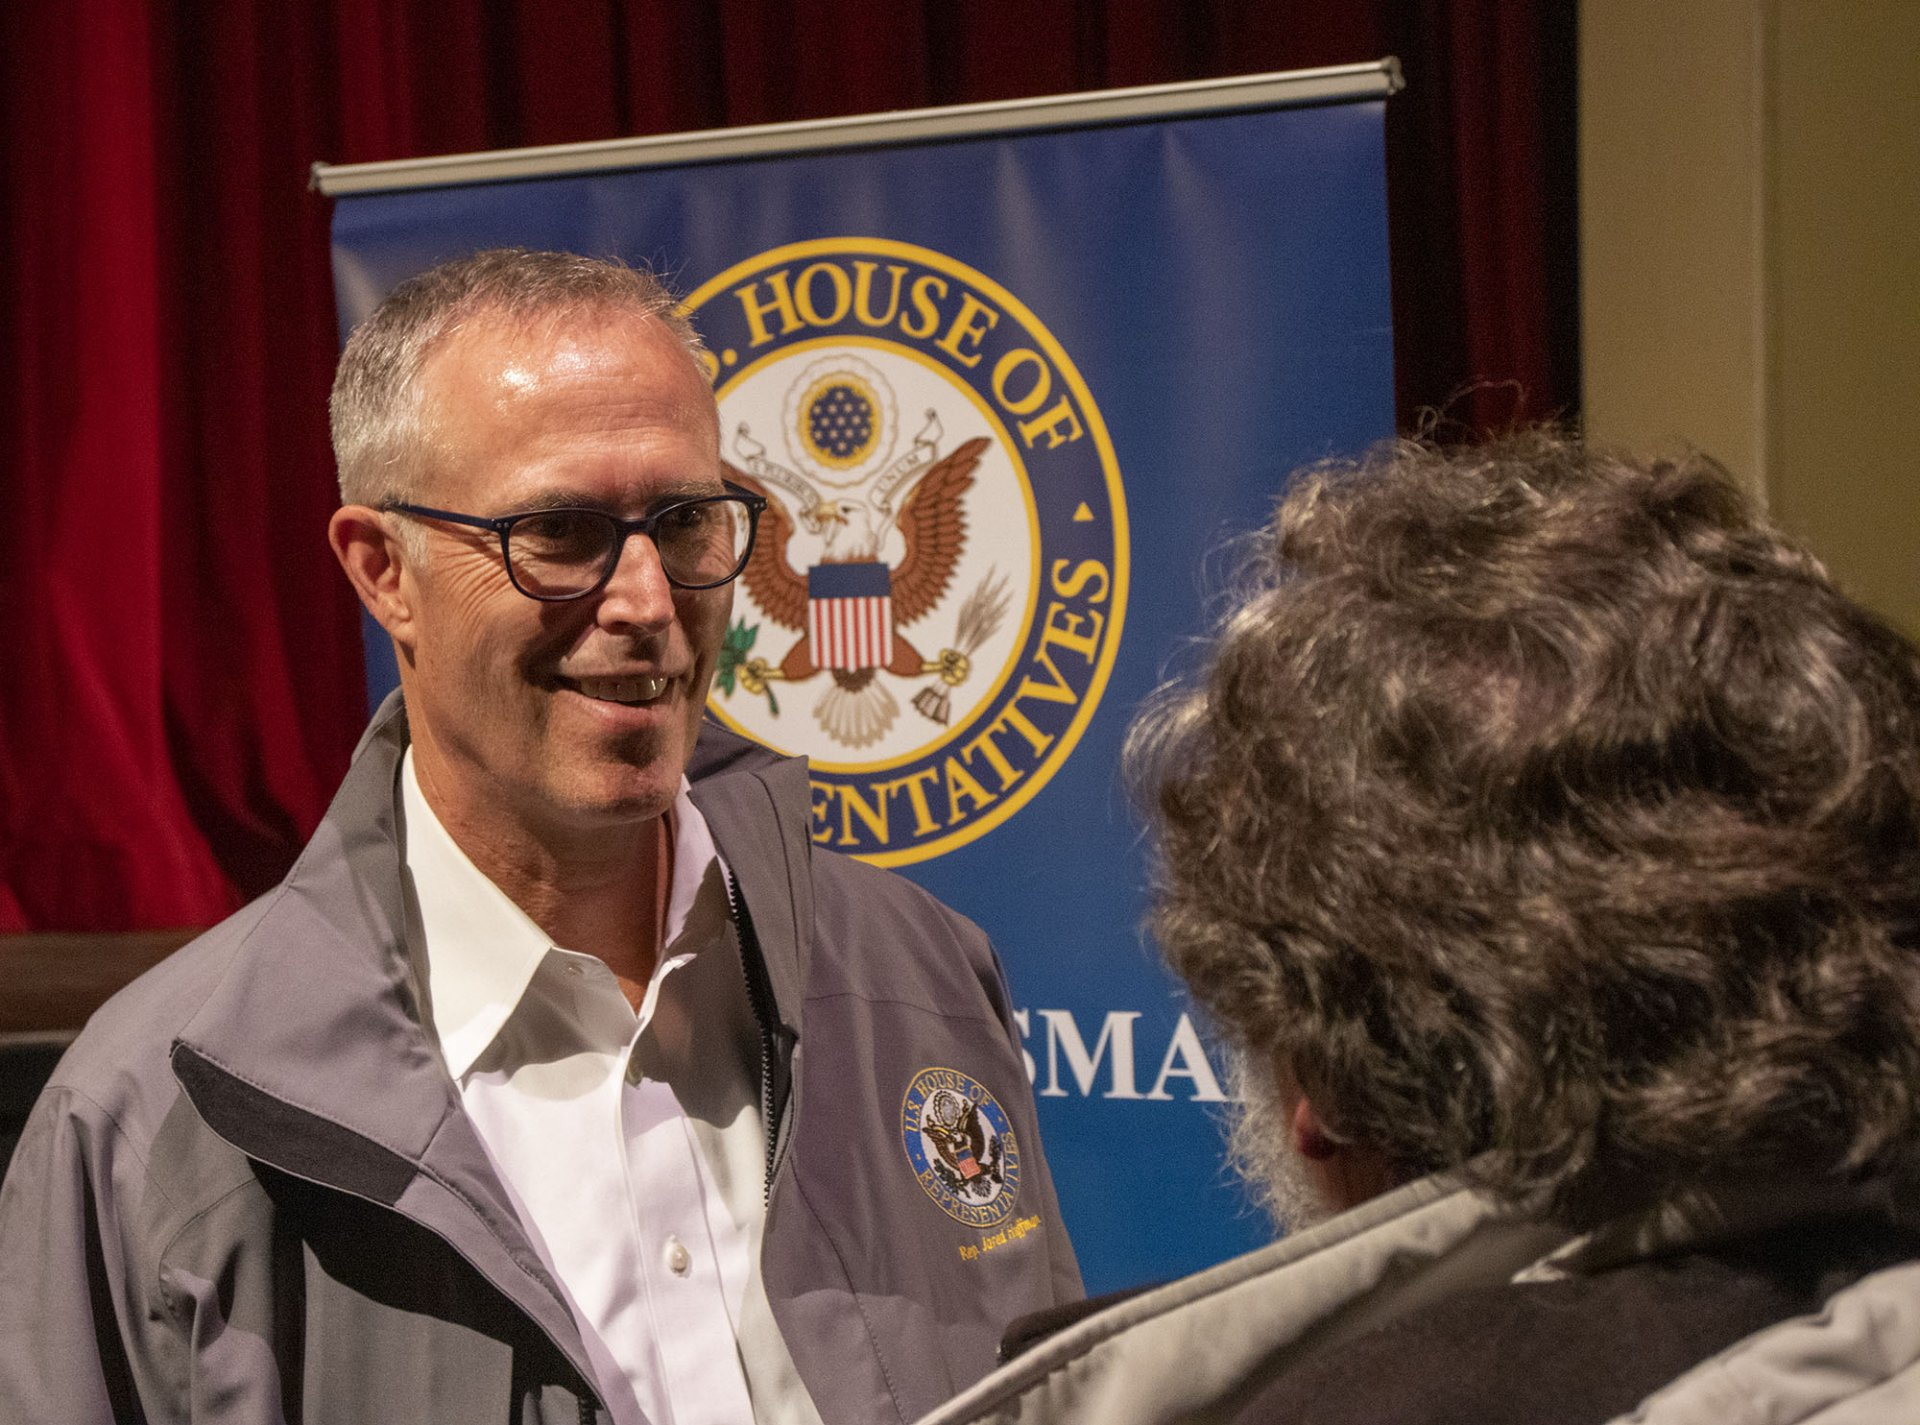 Jared Huffman stands at the front of the auditorium to meet audience members after answering questions on Feb. 21. | Photo by Kris Nagel